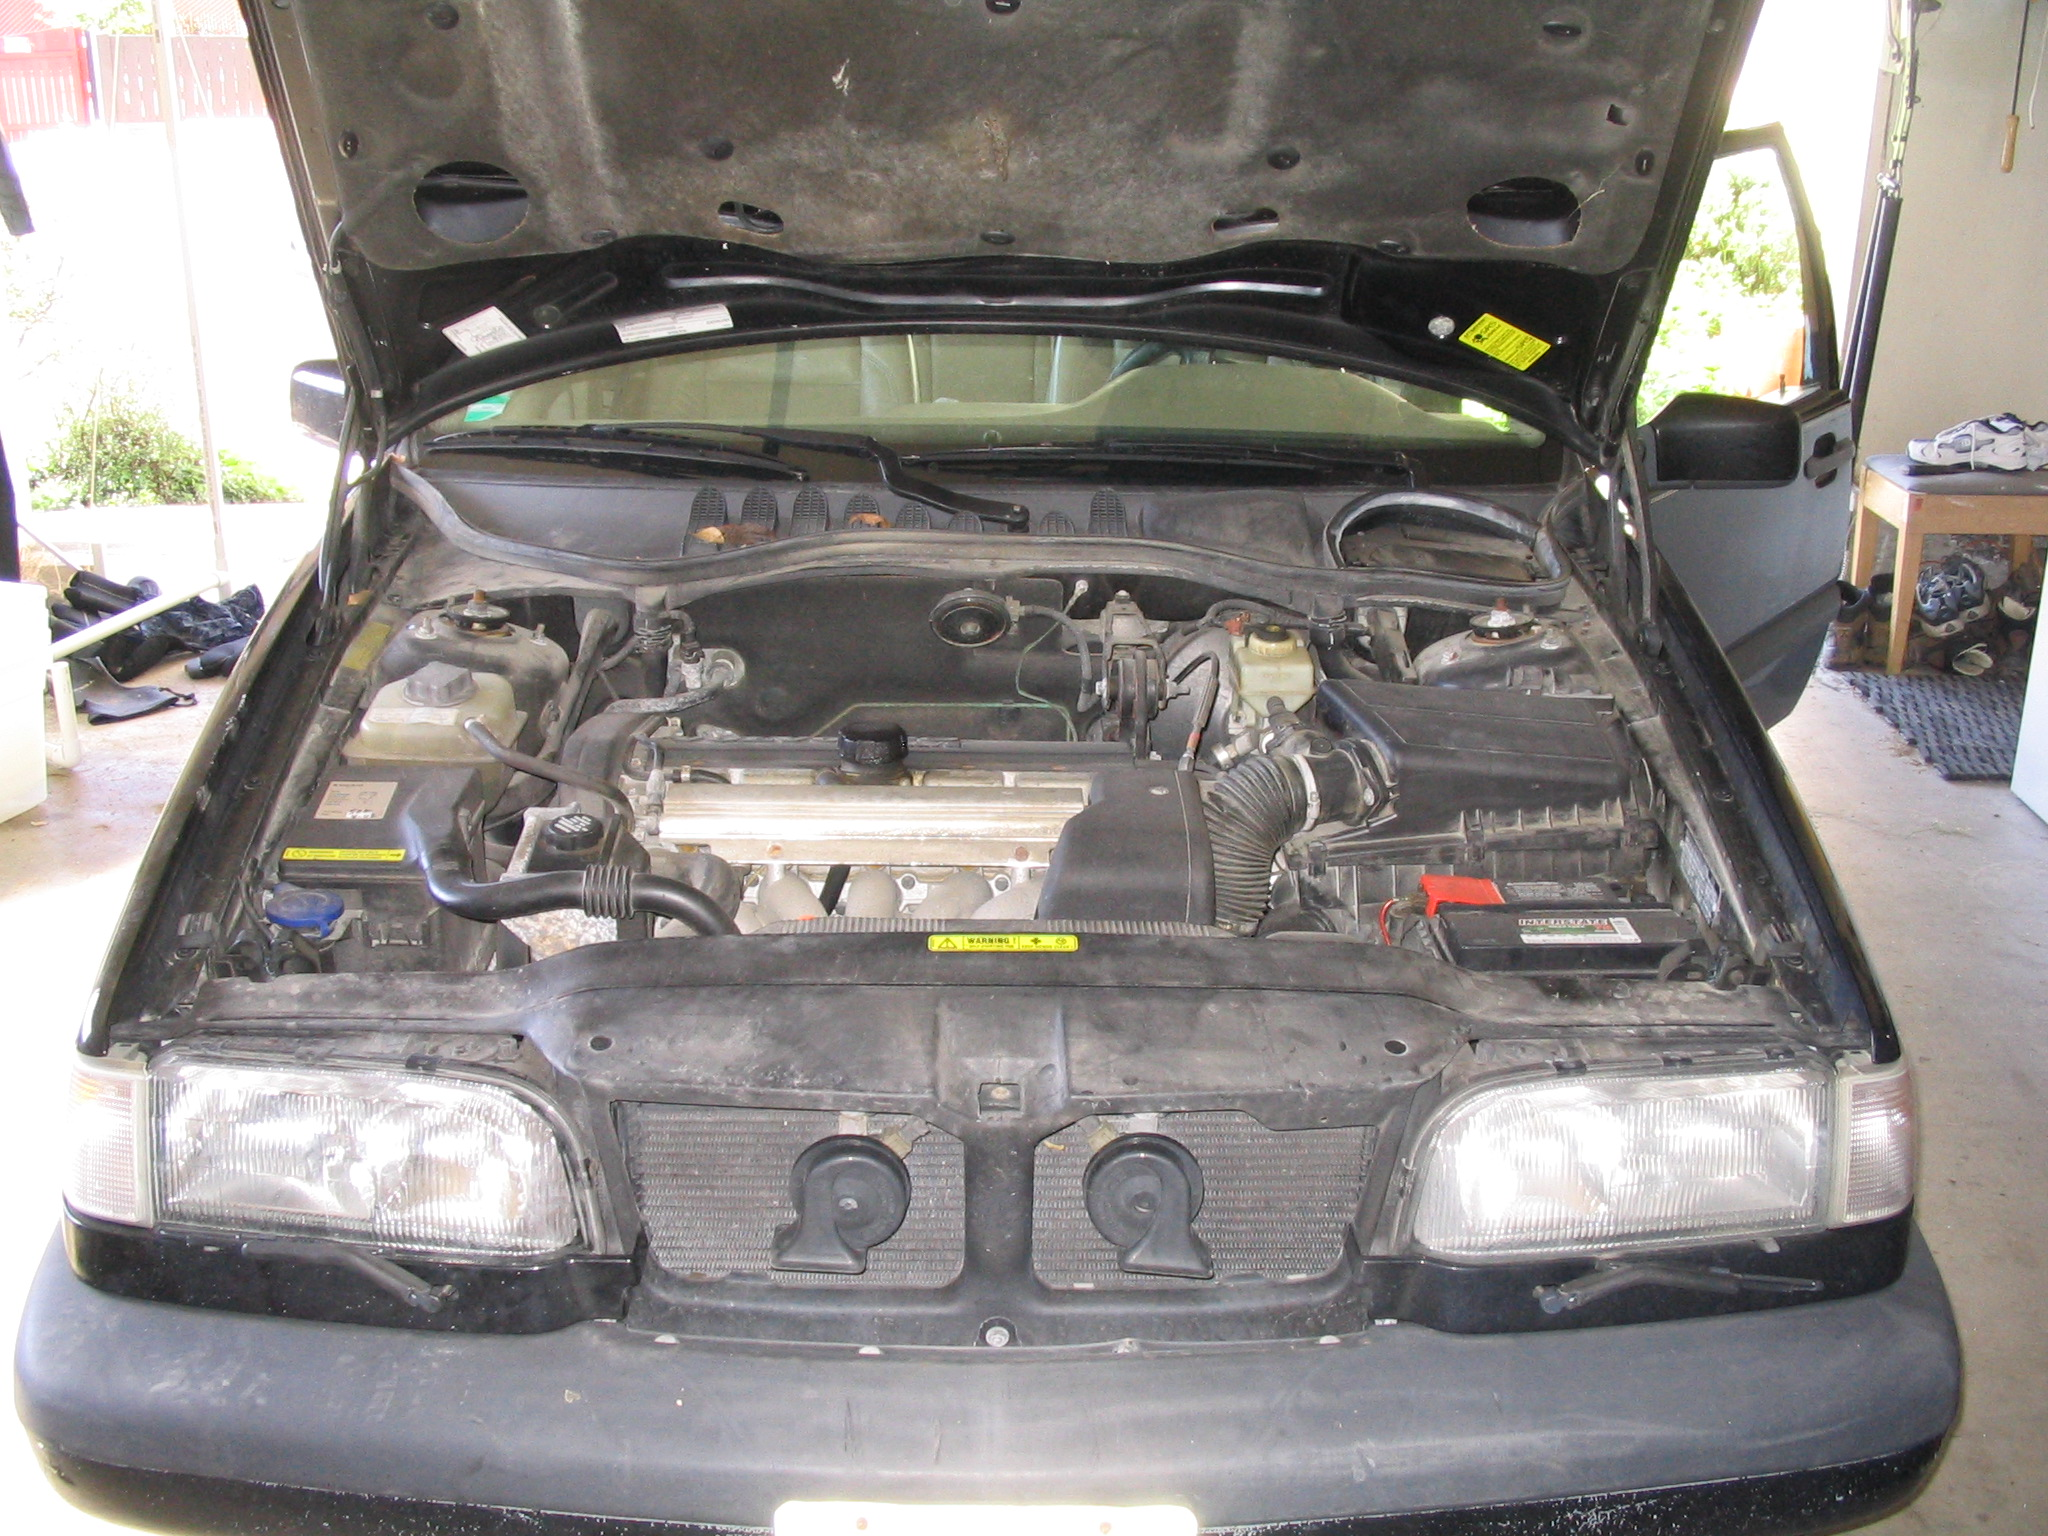 Picture of Open Hood and Check Reflector